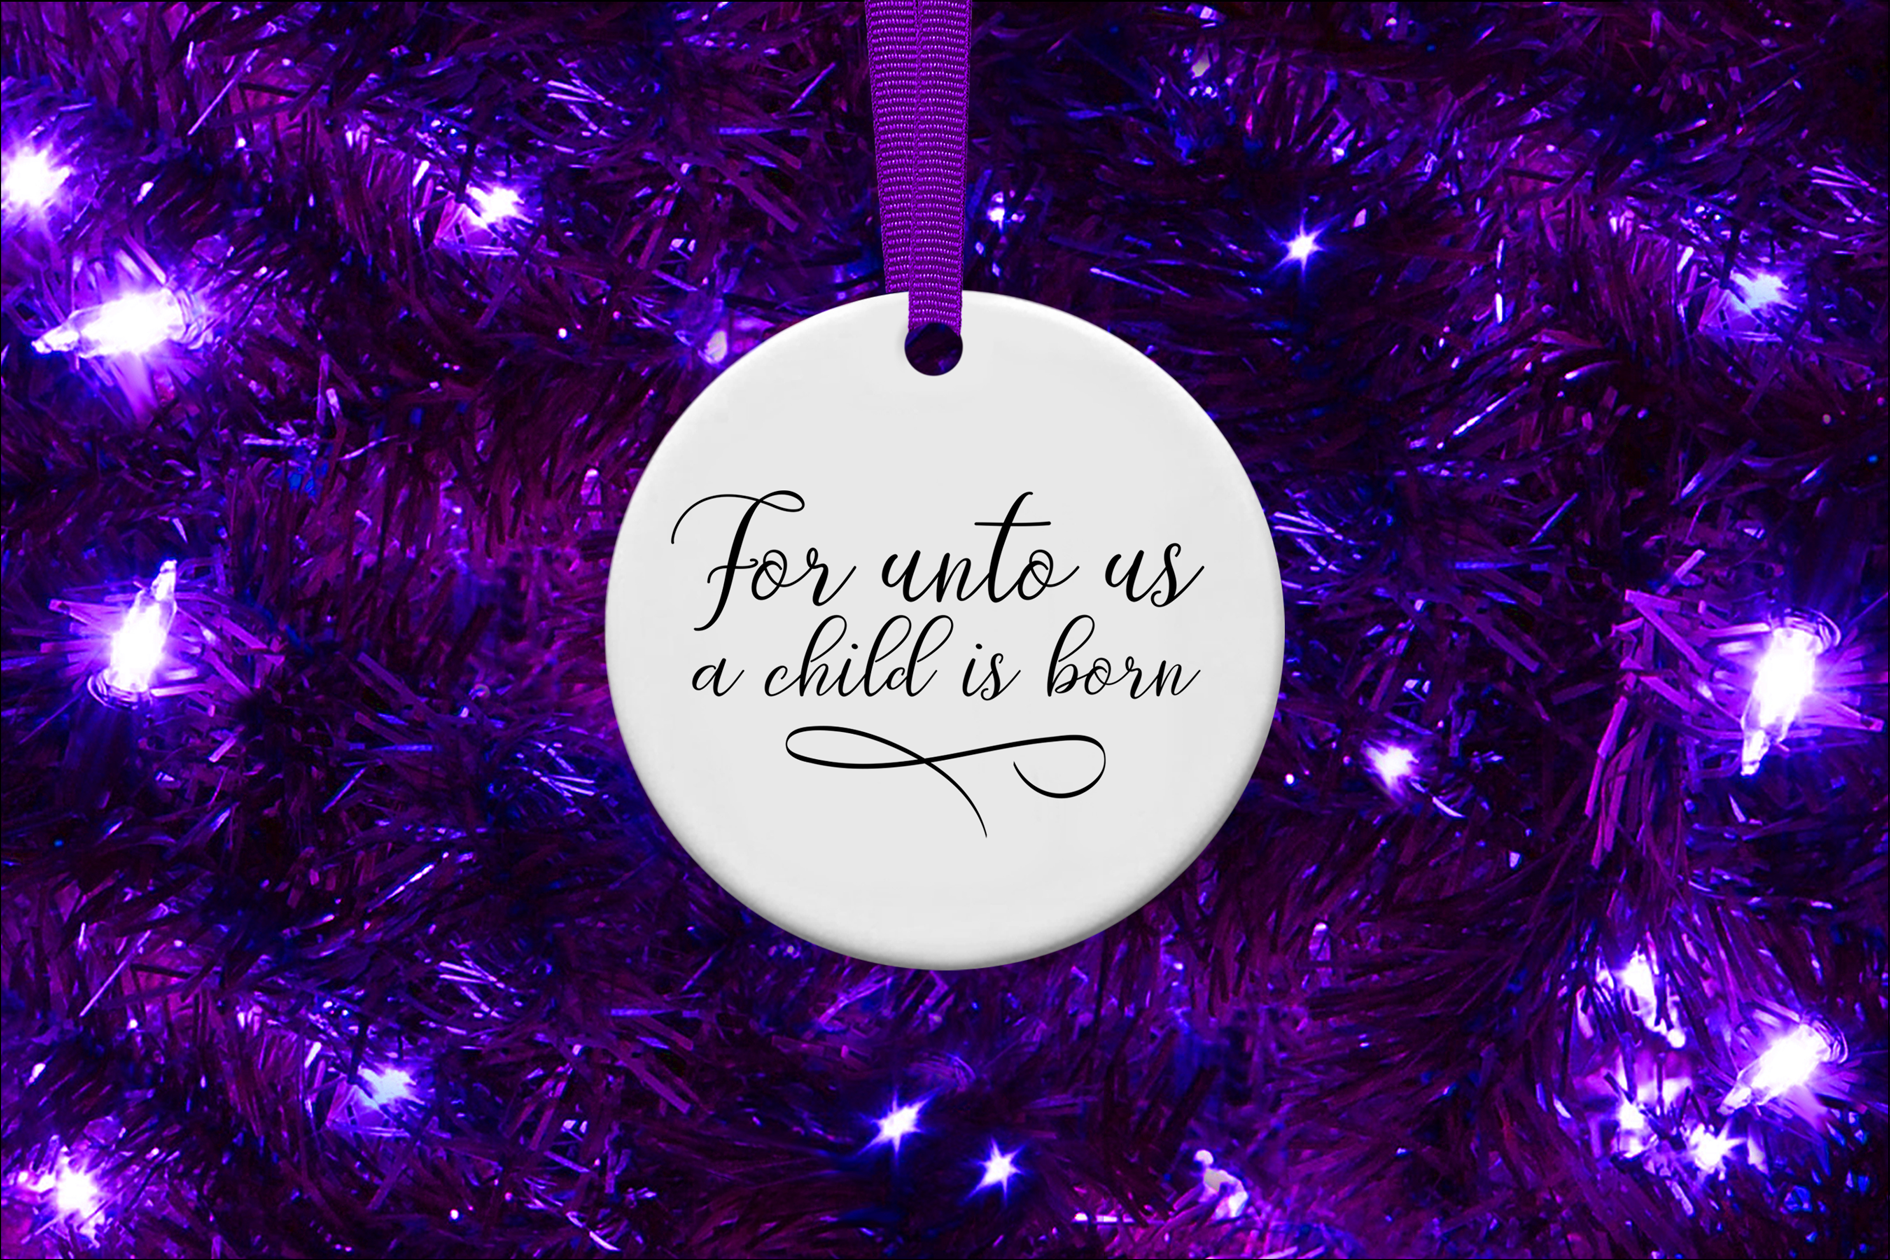 For Unto Us a Child is Born, A Christmas Scripture SVG example image 2